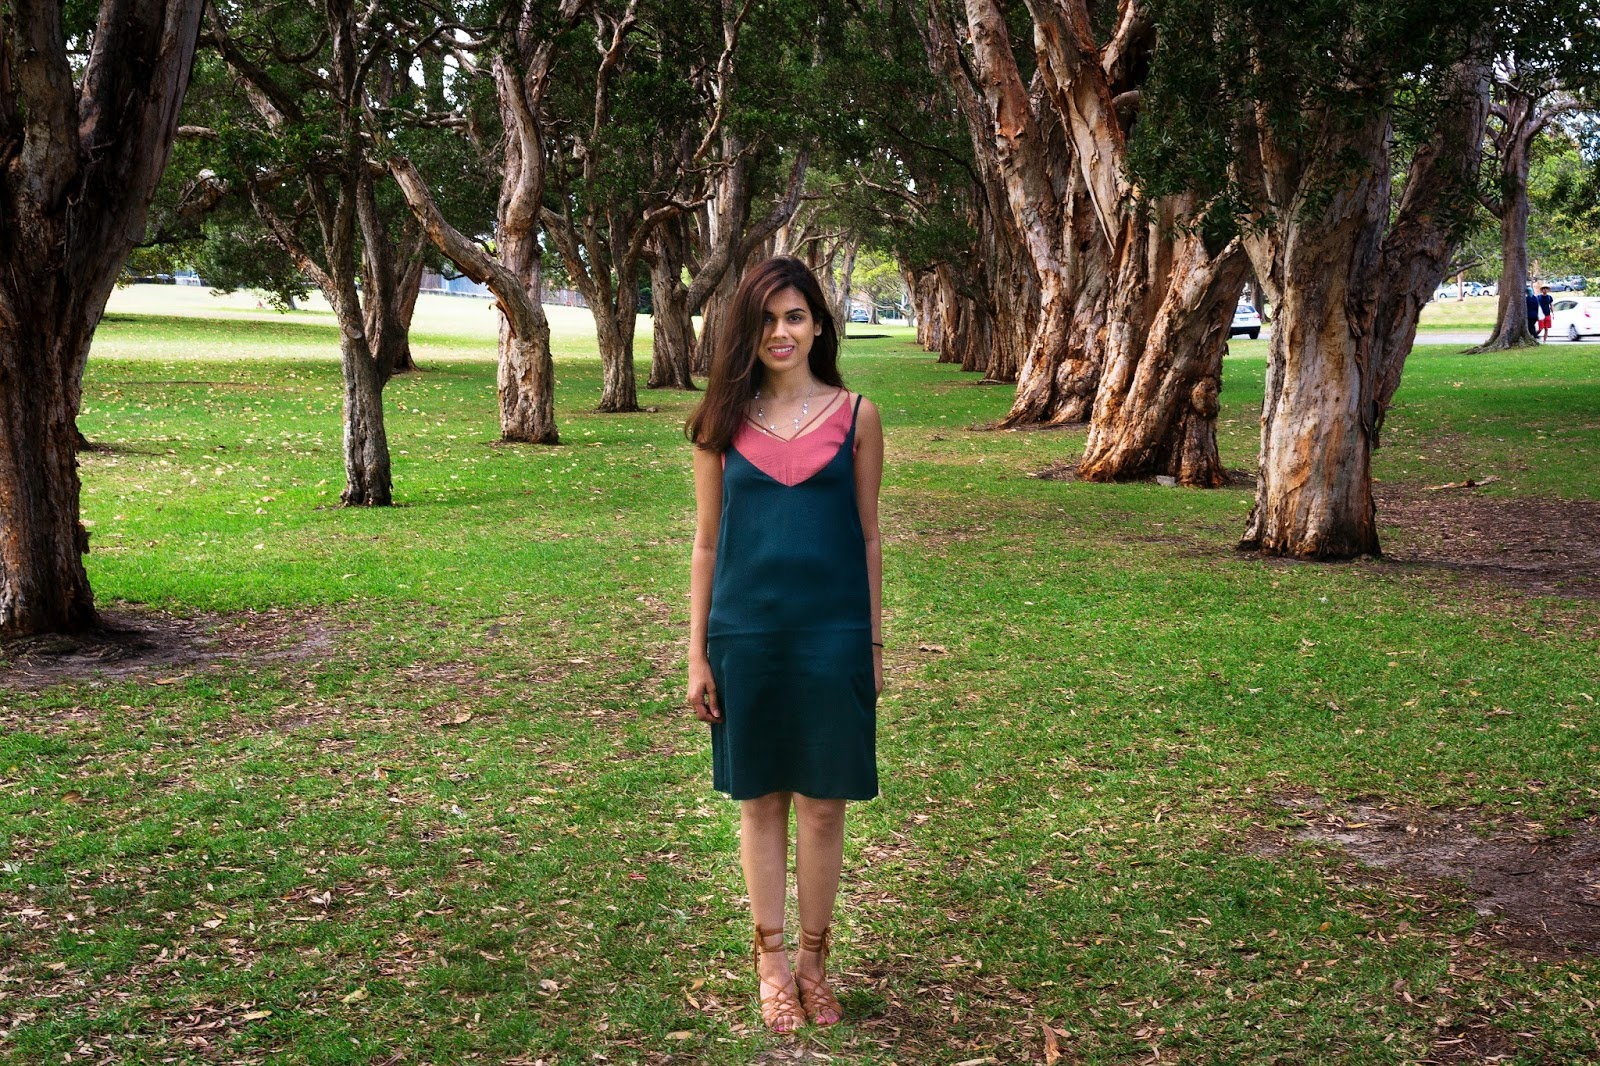 New Look 2 In 1 90s Lace Slip Dress in Centennial Parklands Sydney